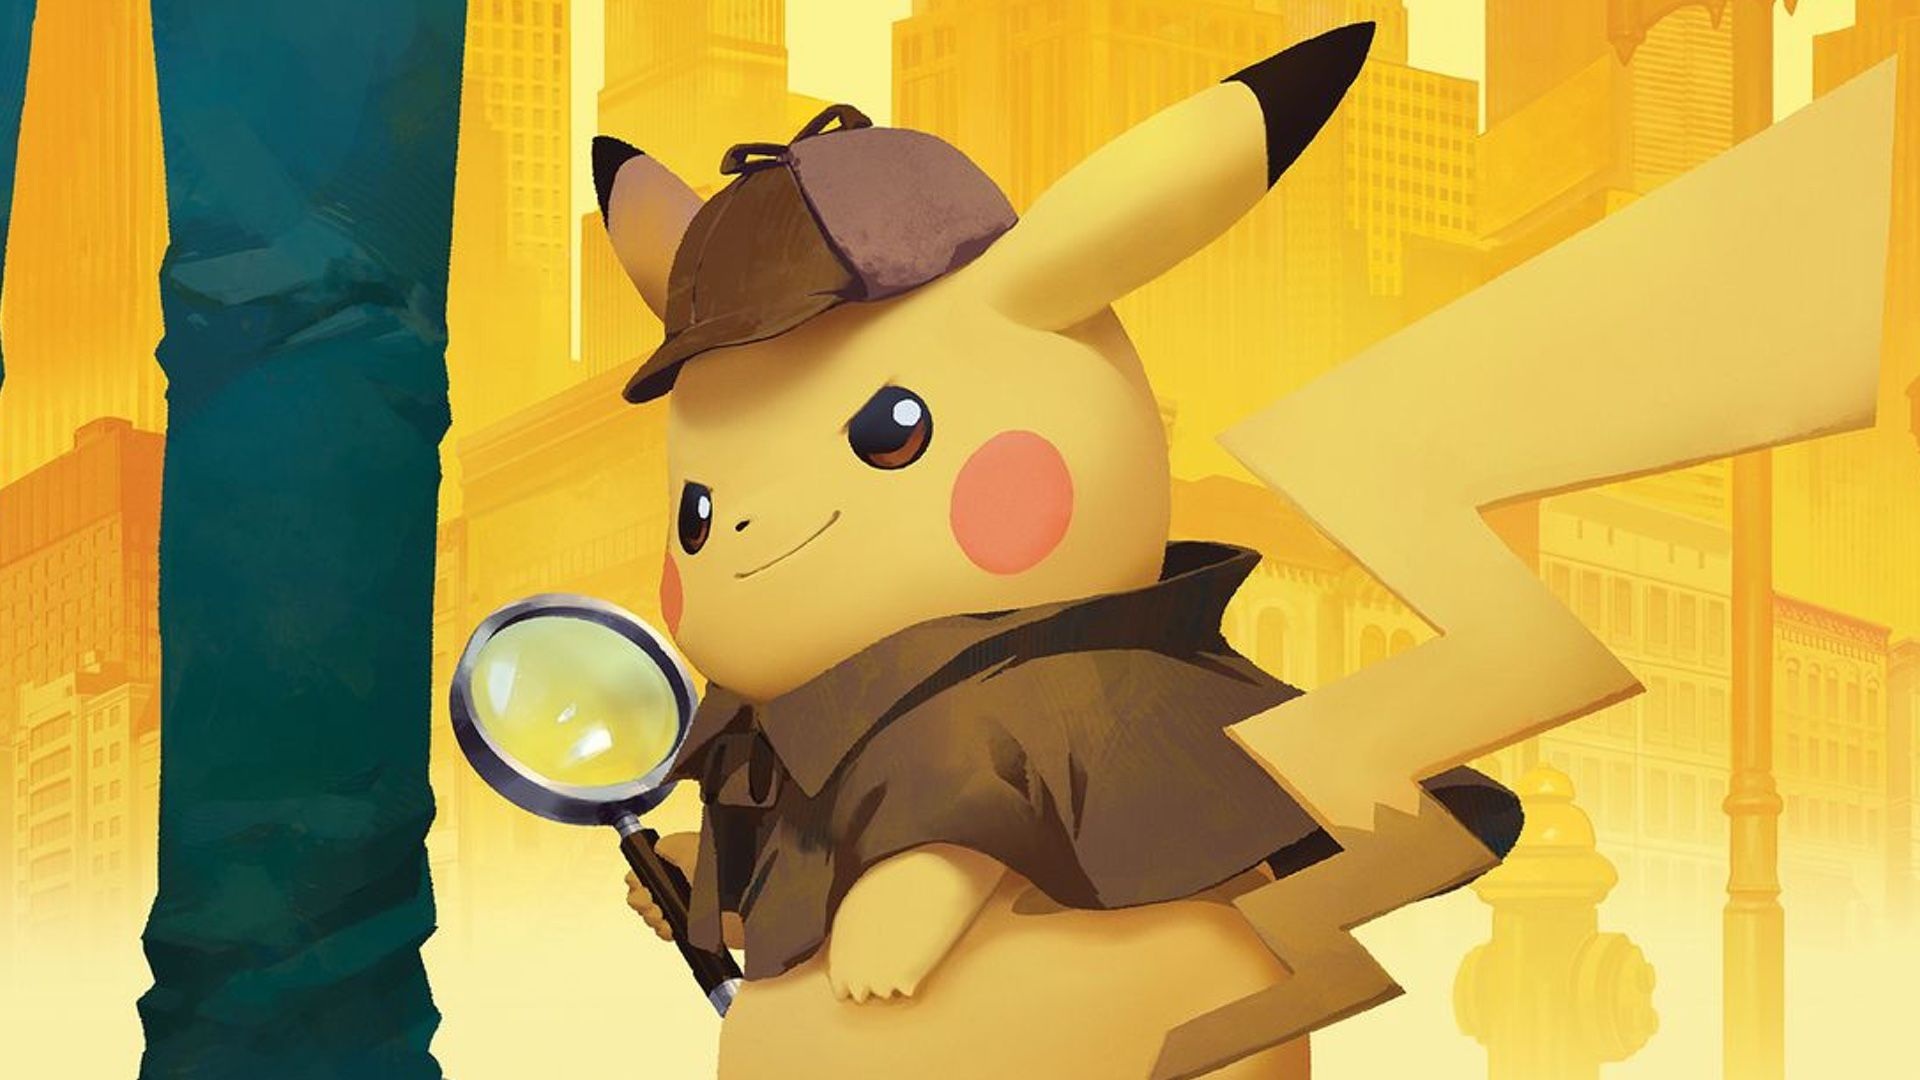 Detective Pikachu fans can expect a new game experience on Nintendo Switch with a different ending than the one shown in the live action adaptation.